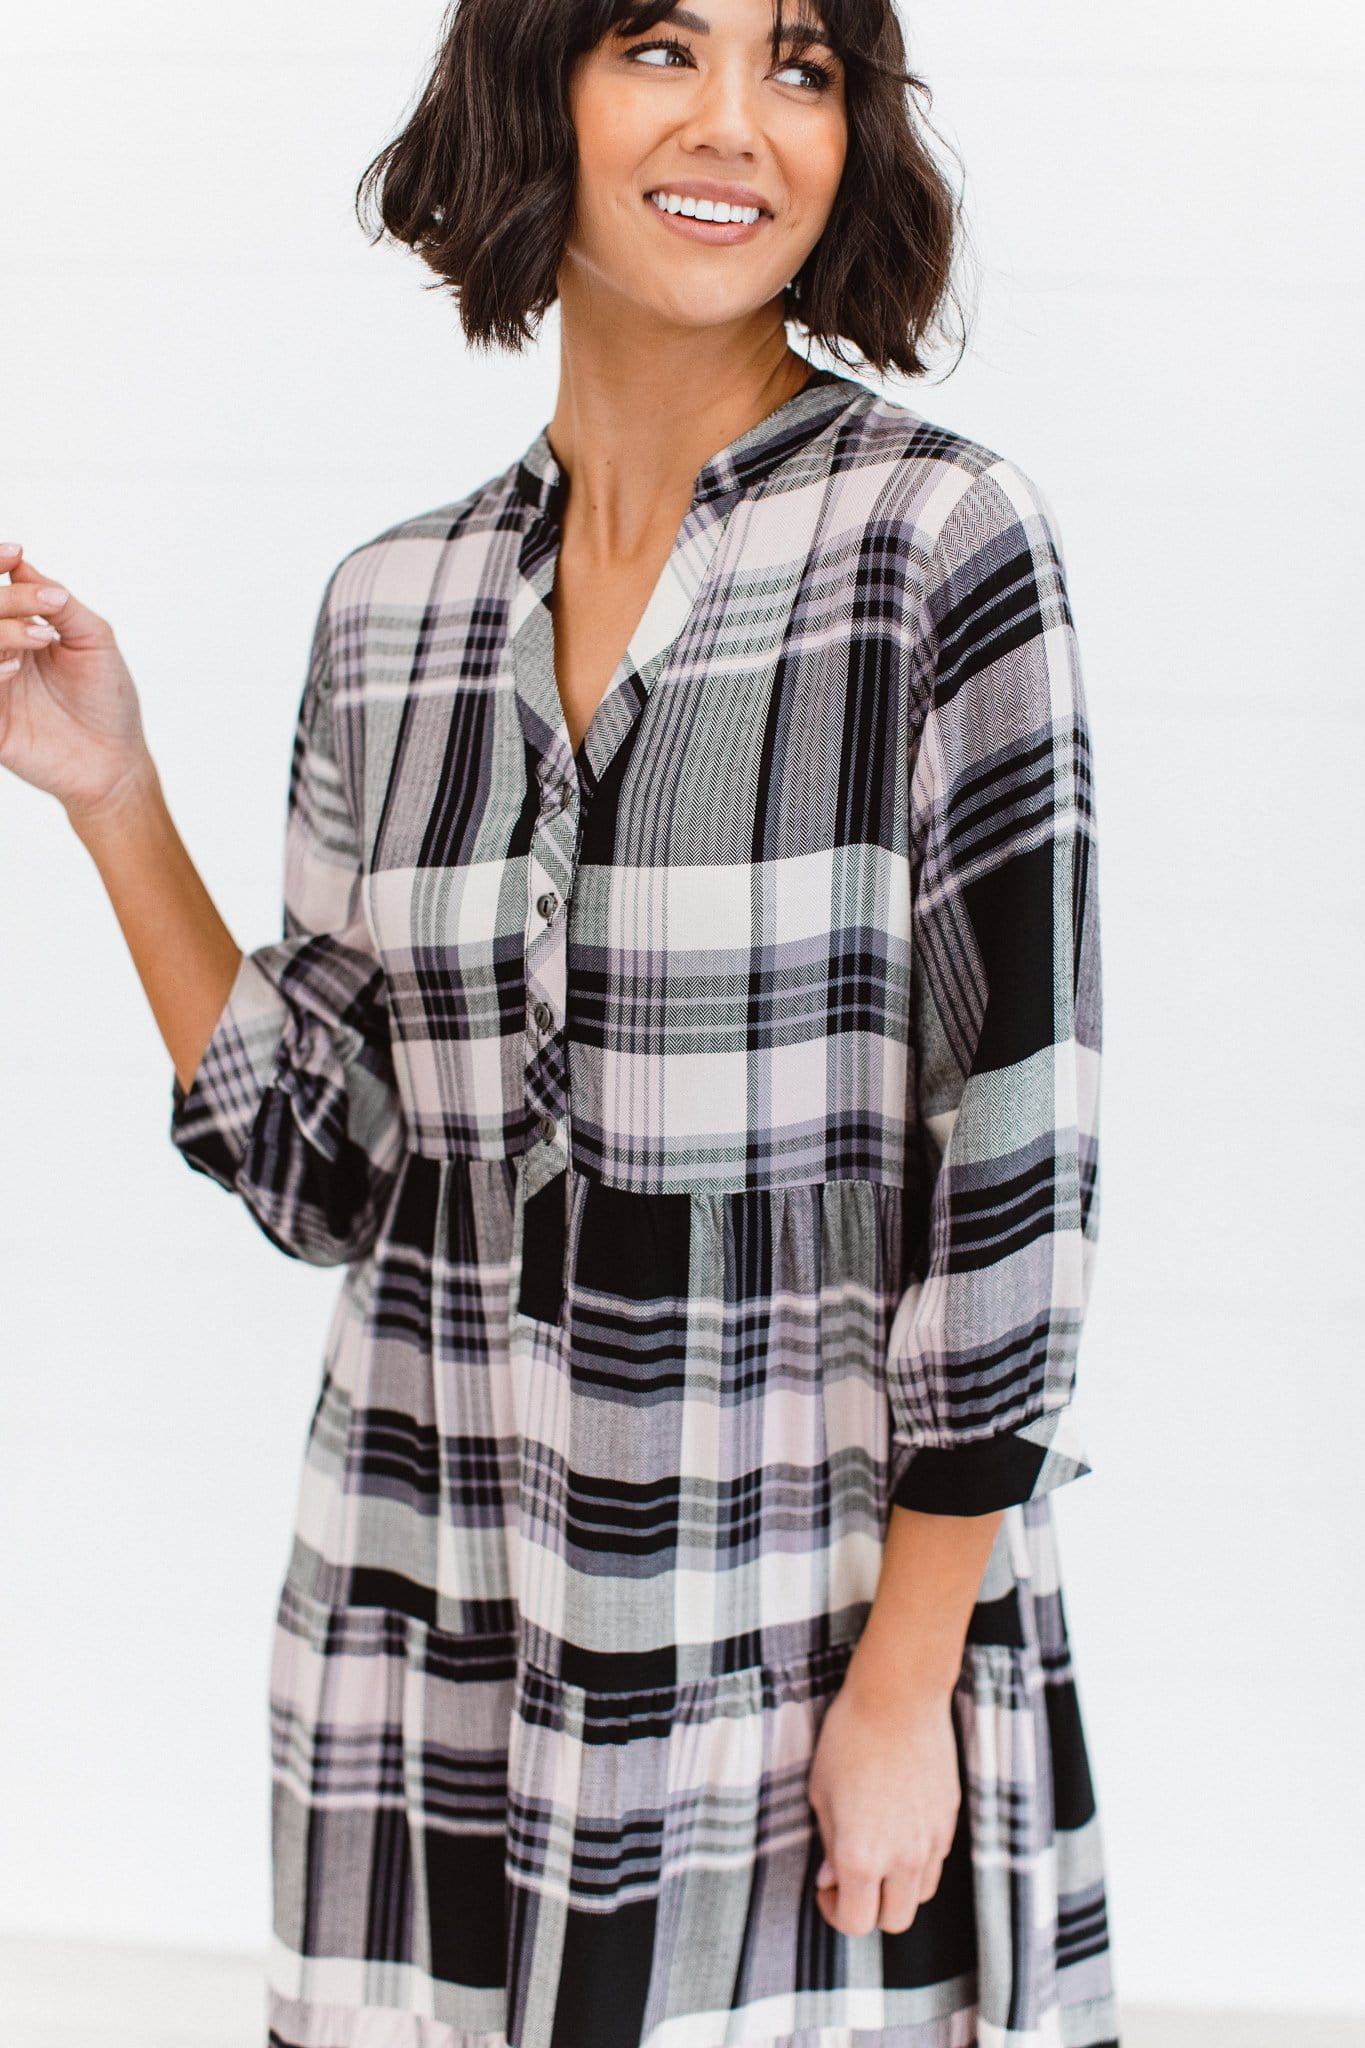 The Elodie Plaid Dress in Black with Pink